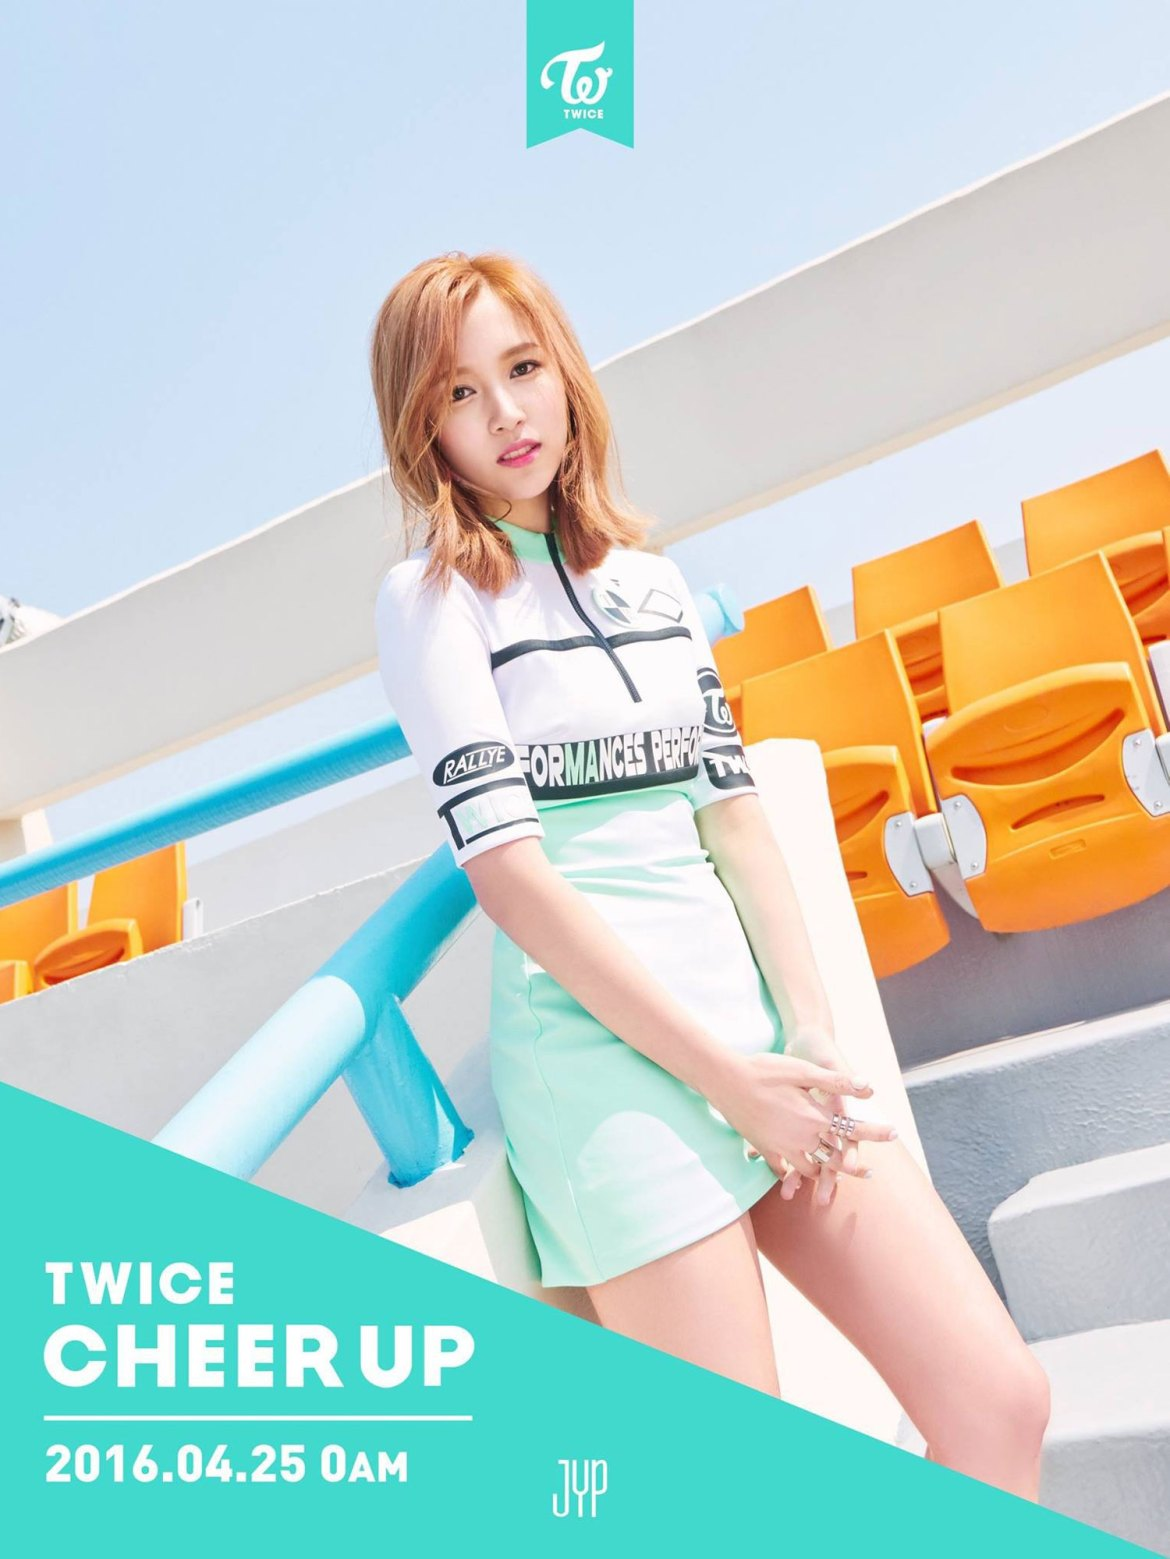 TWICE Mina Cheer Up album concept photo